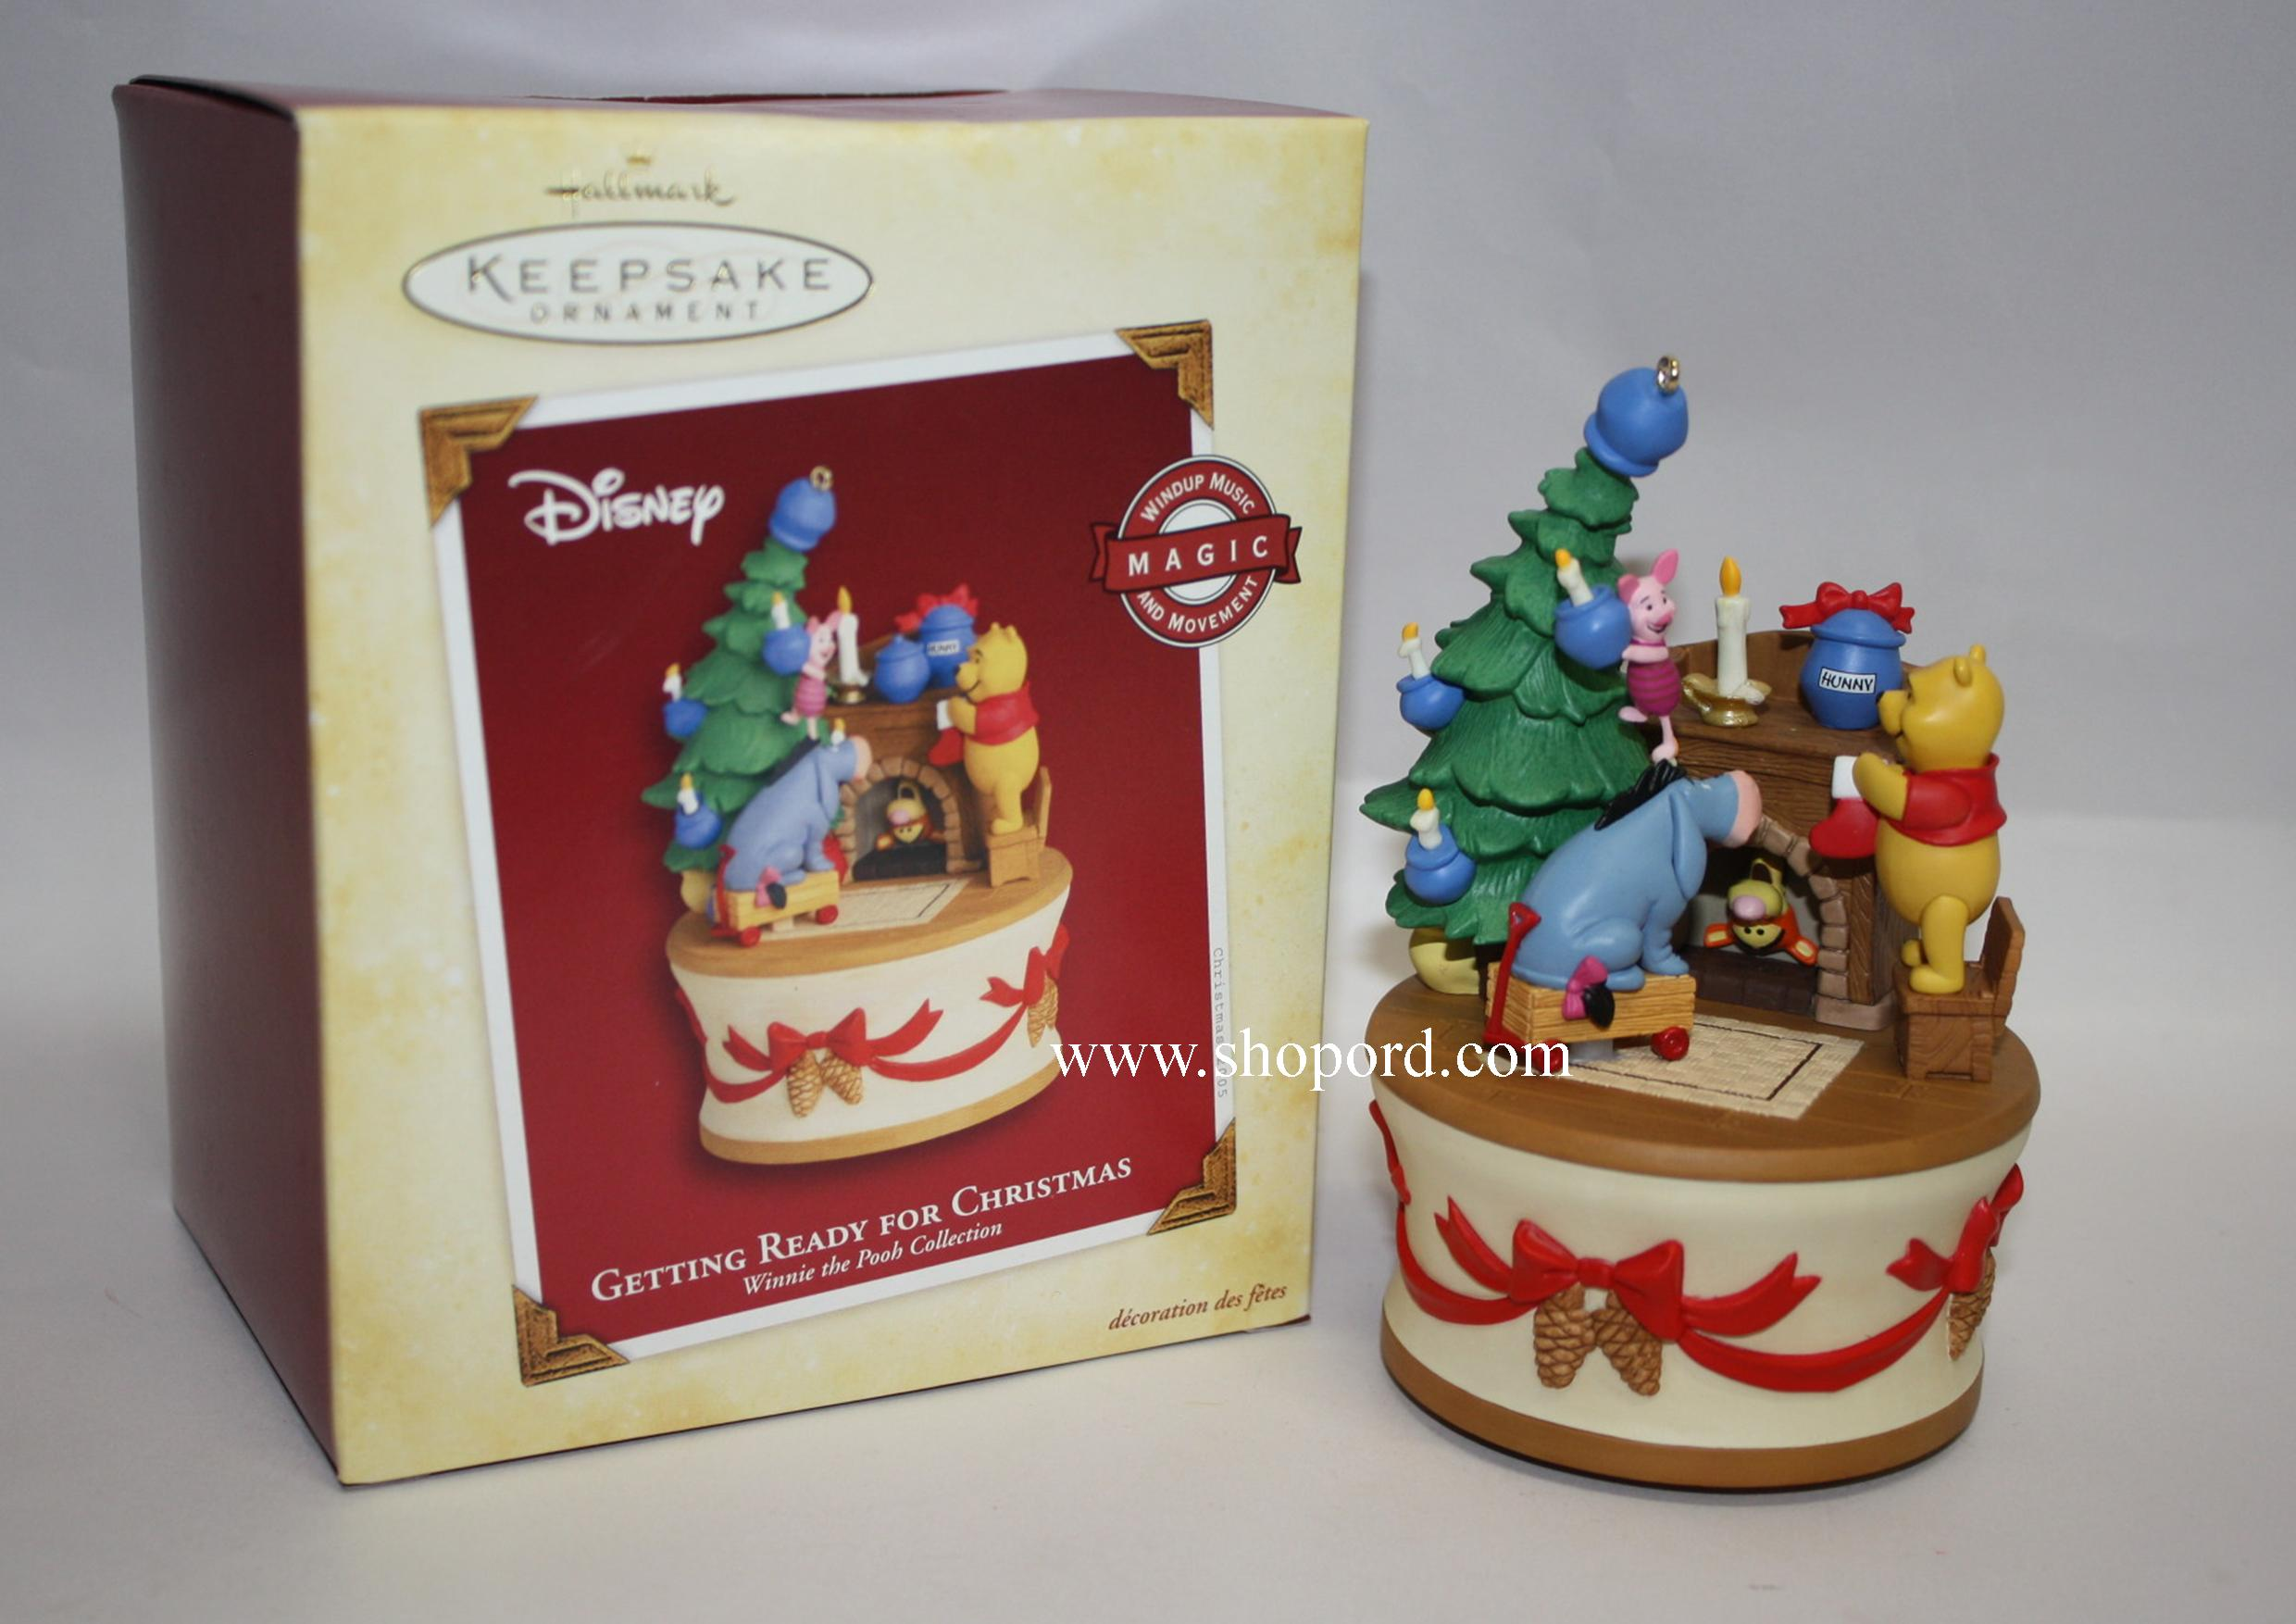 Hallmark 2005 Getting Ready For Christmas Ornament Winnie the Pooh ...